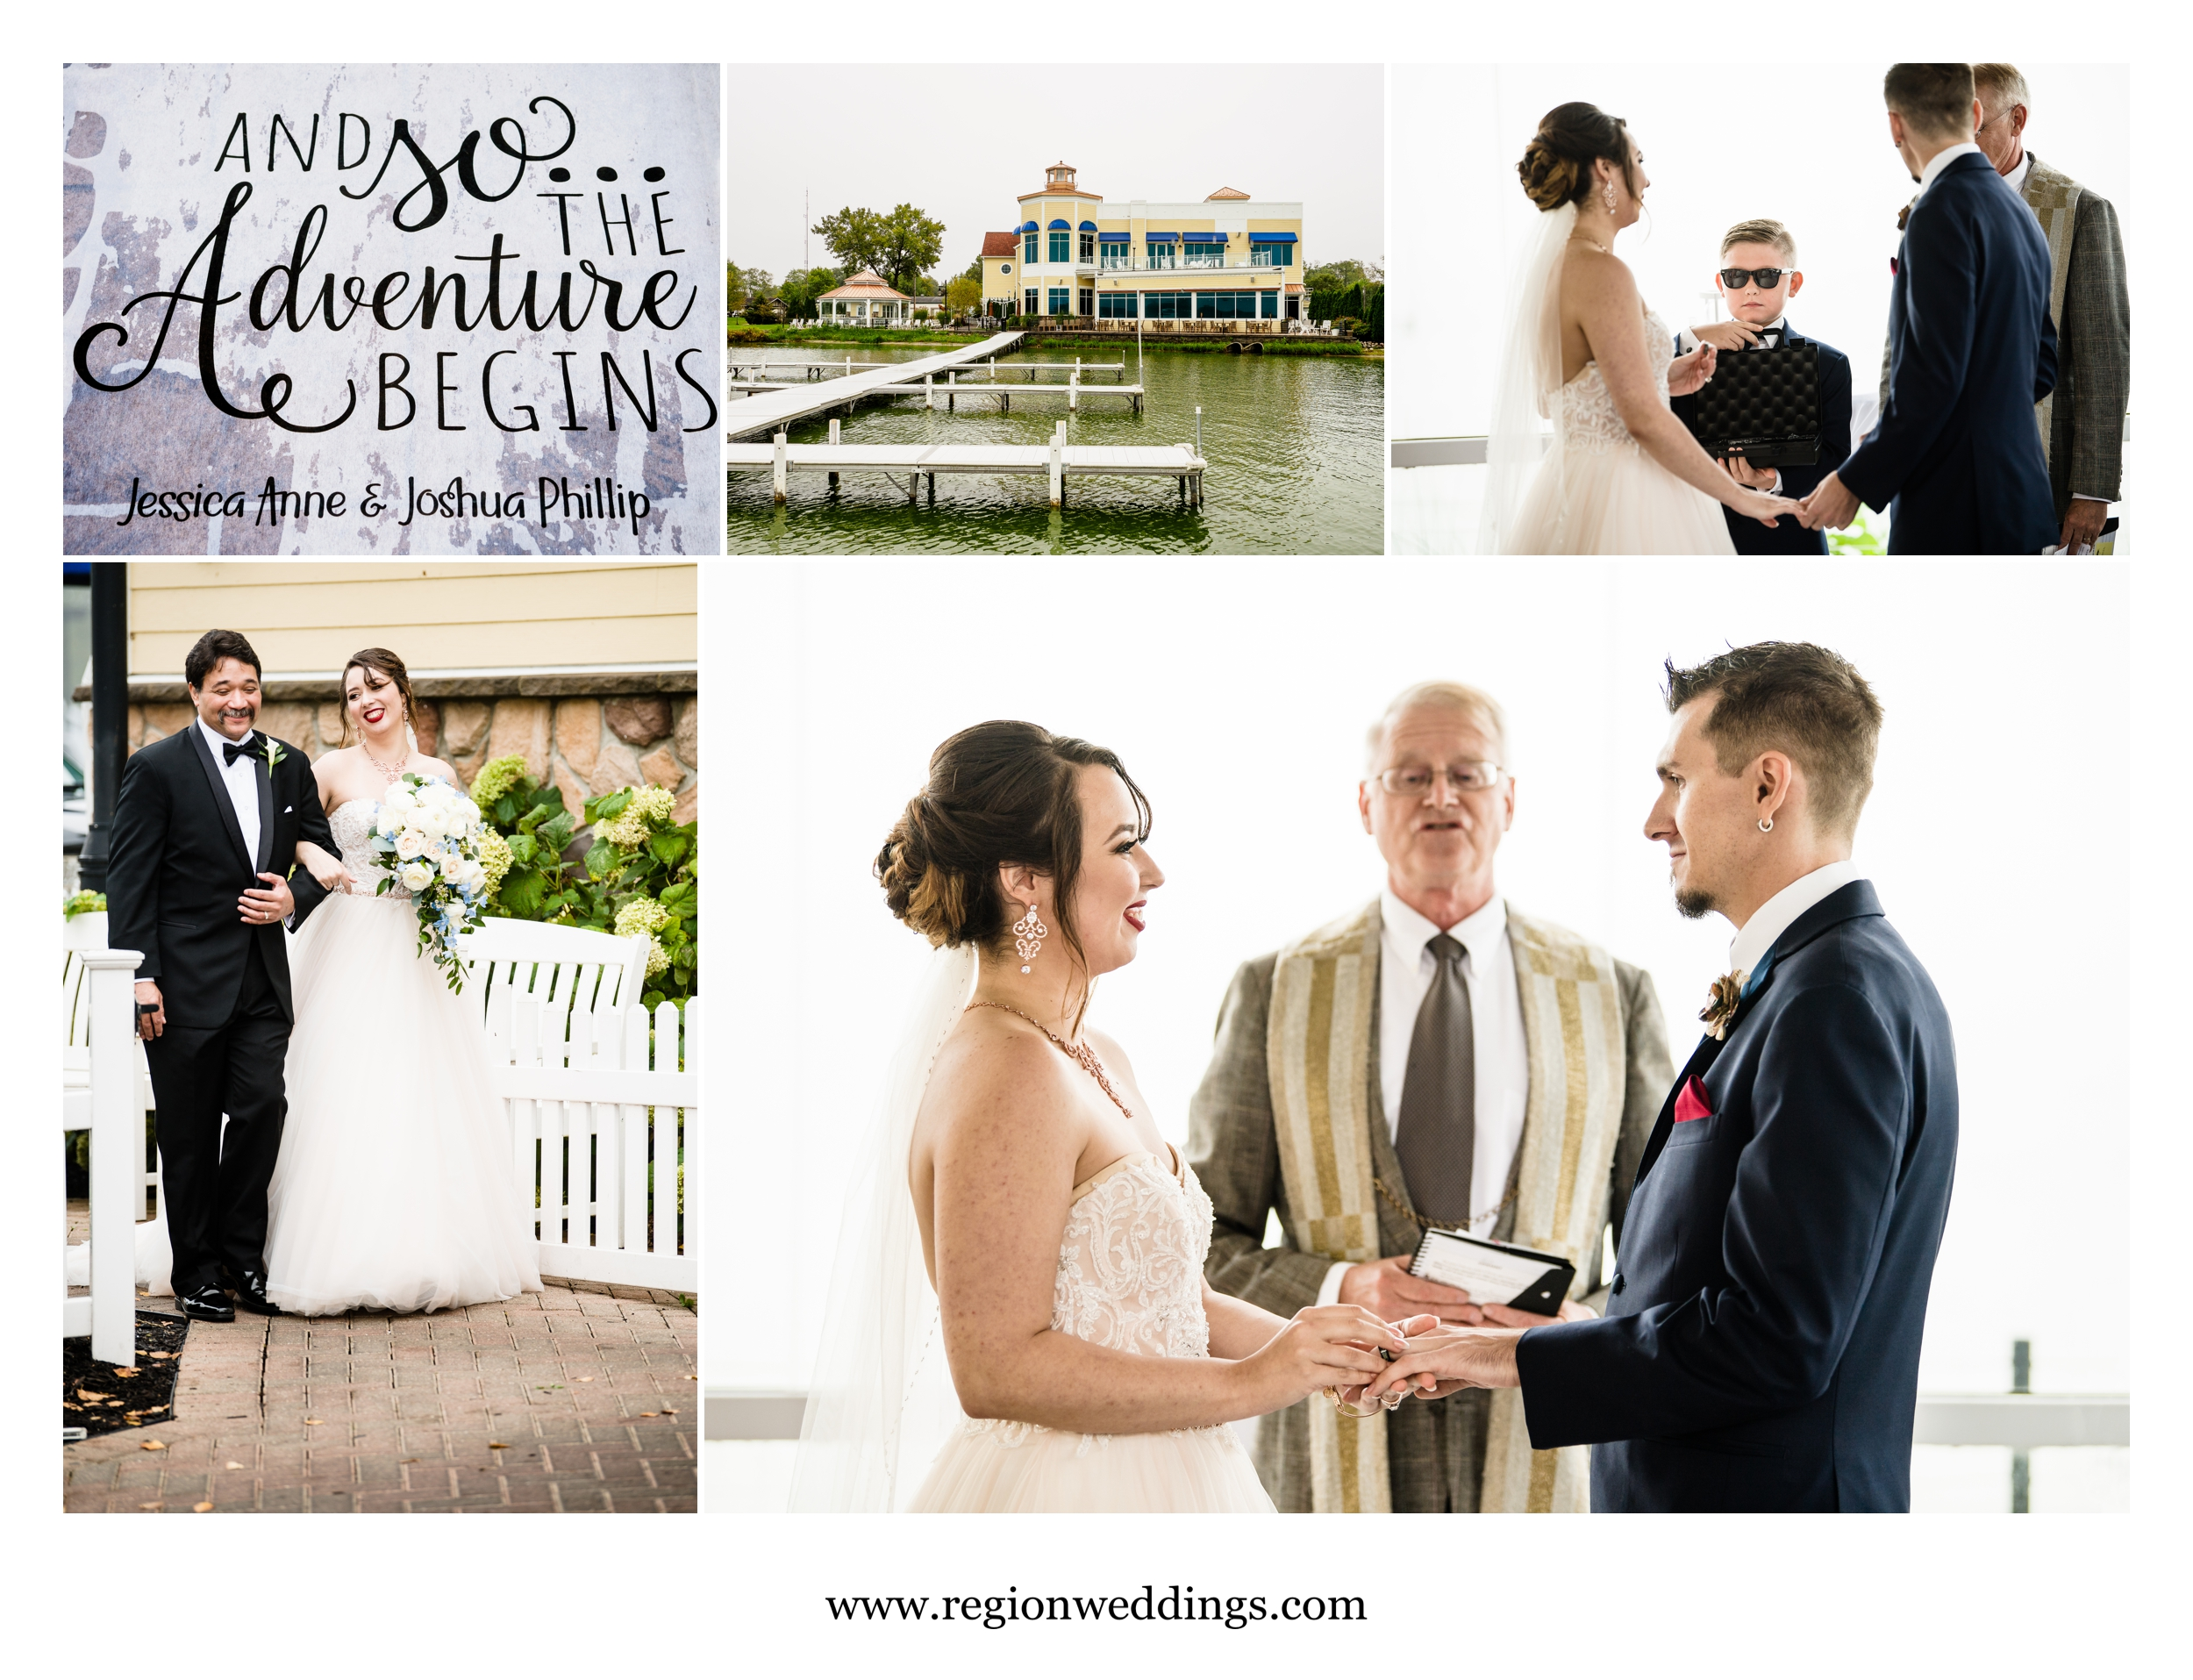 Outdoor wedding ceremony at Lighthouse Restaurant.